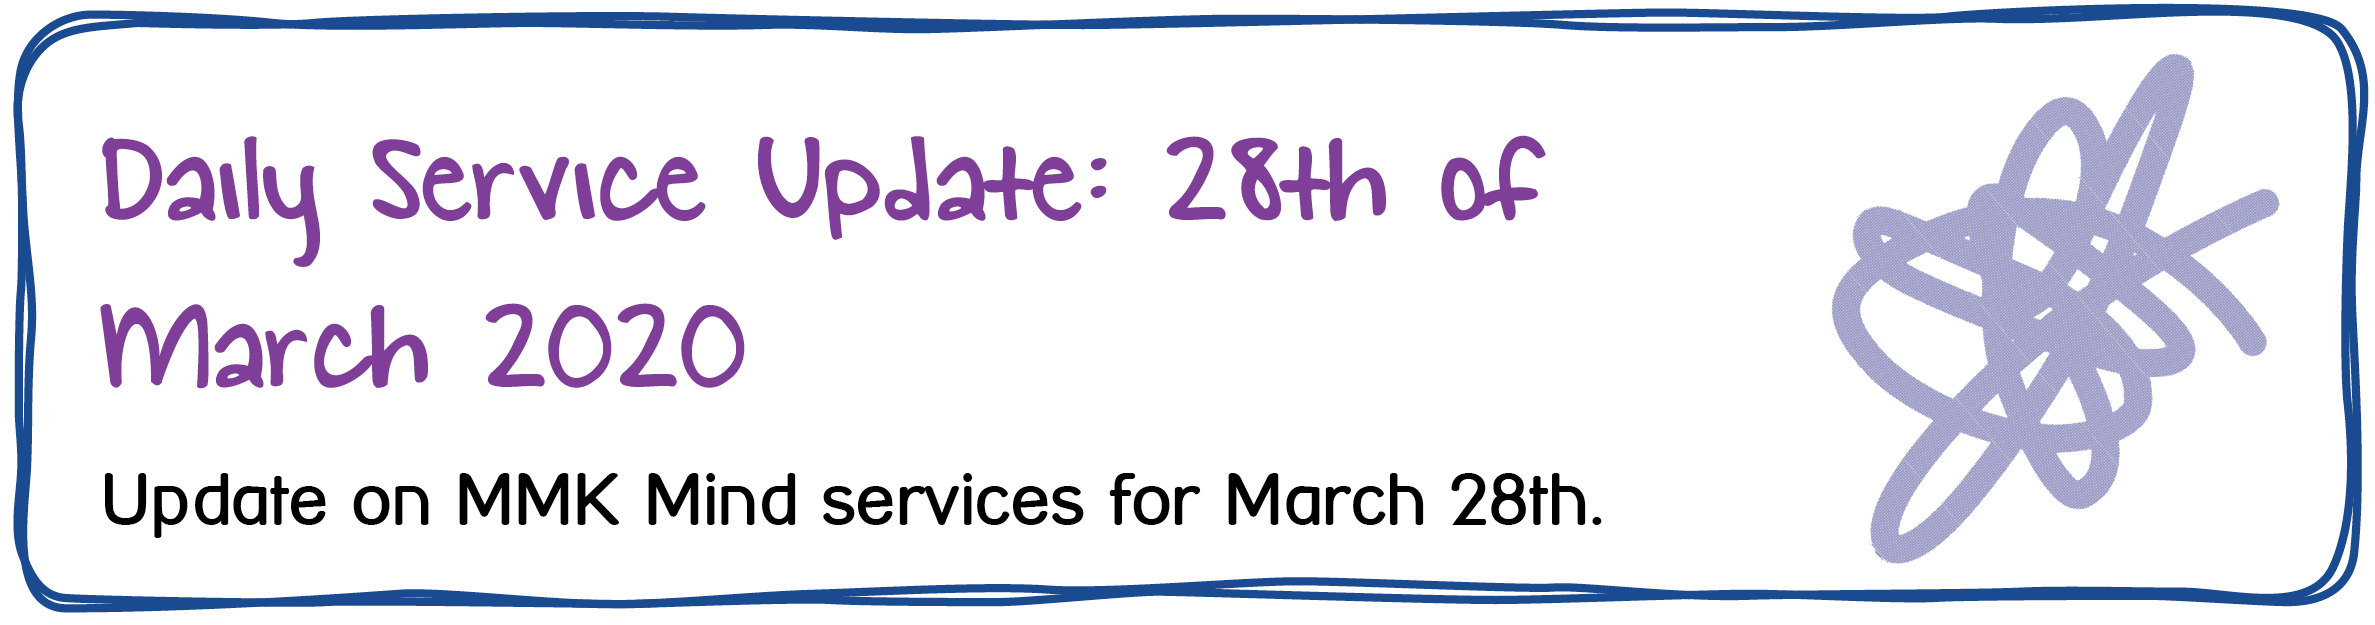 Daily Service Update: 28th of March 2020. Update on MMK Mind services for March 28th.